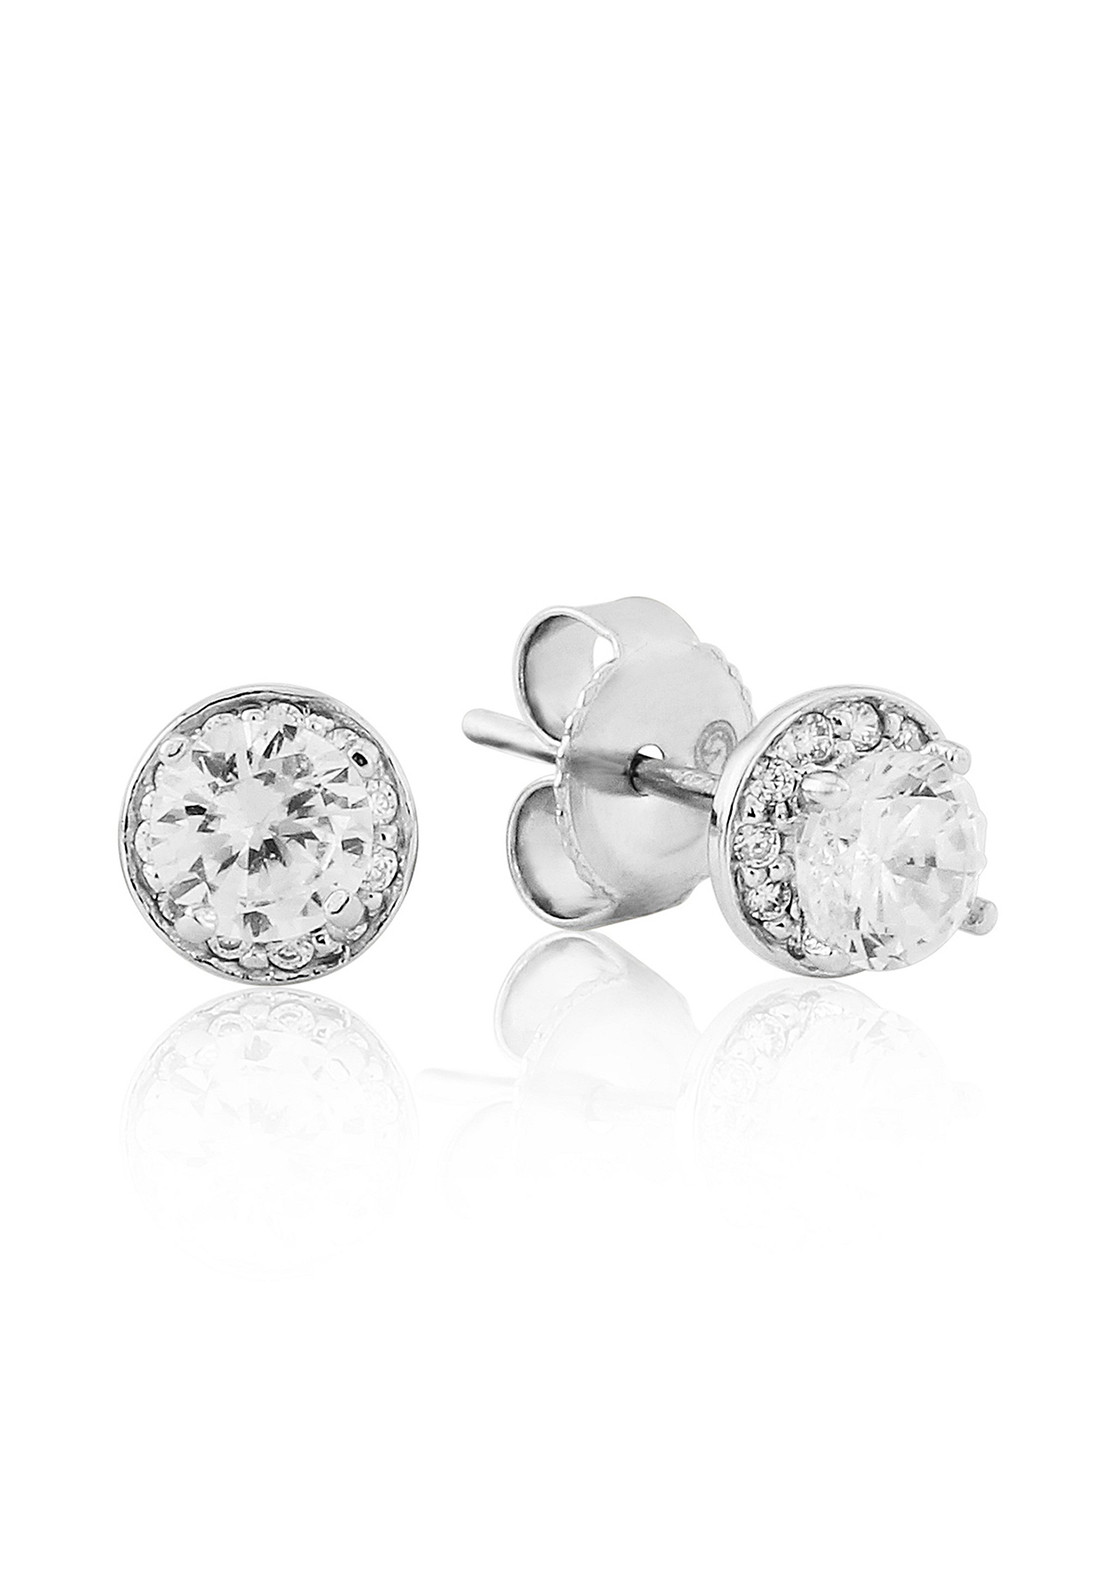 Waterford Crystal Pave Stud Earrings, Silver